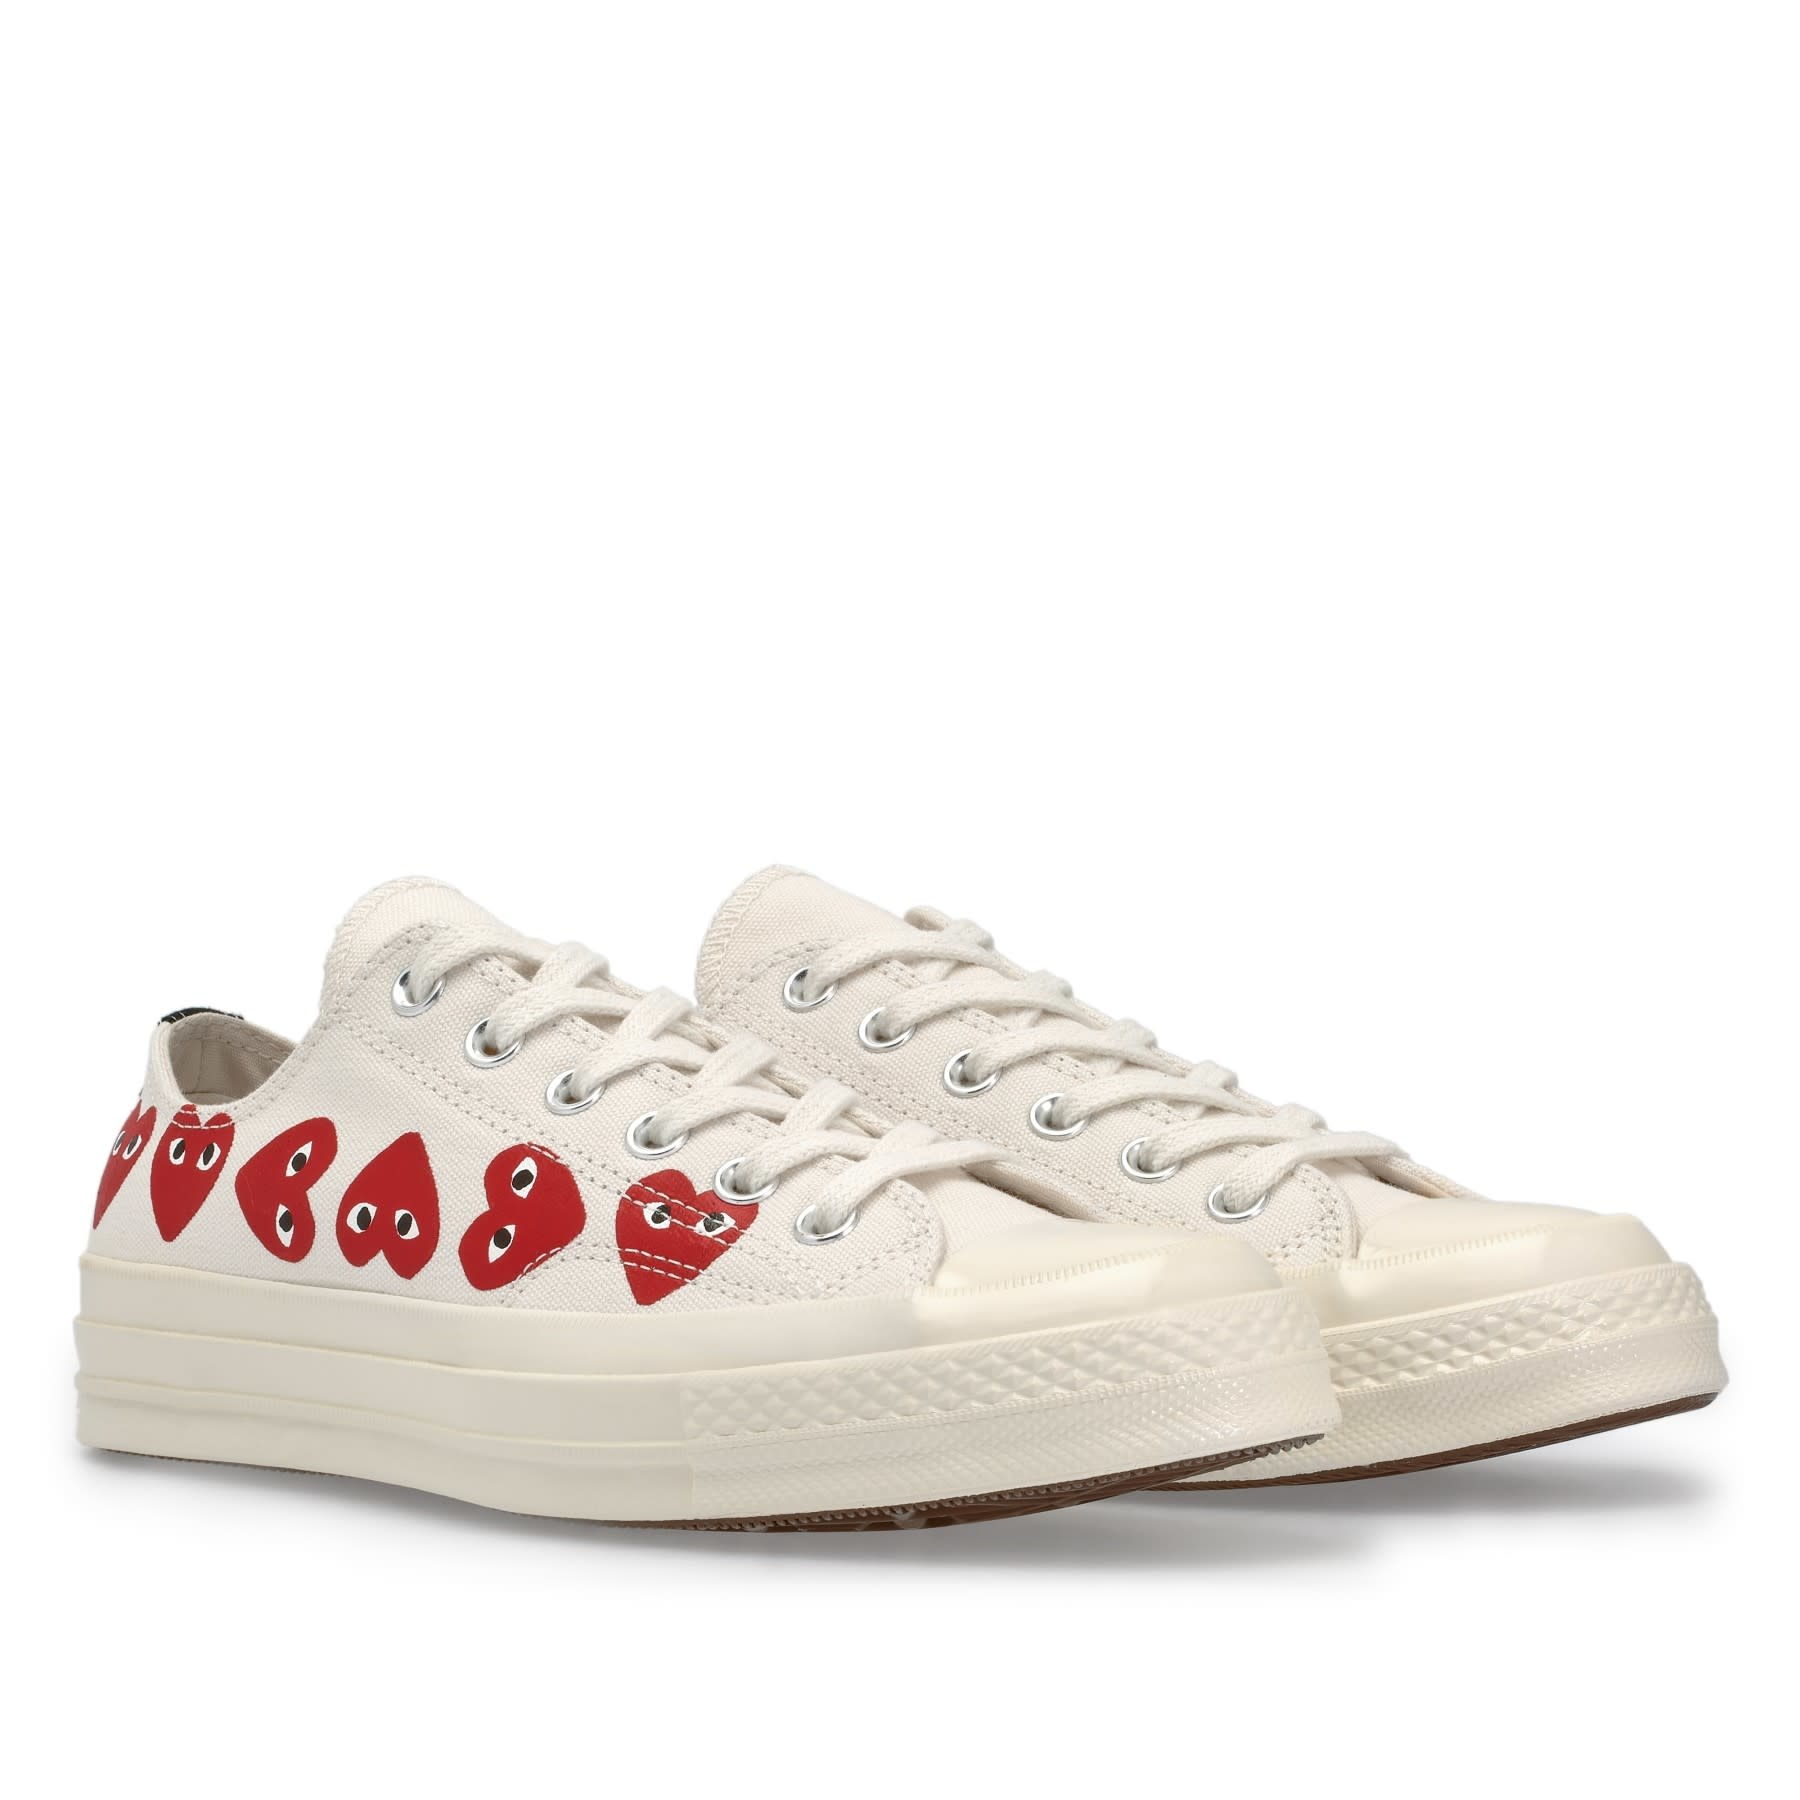 COMME des GARÇONS PLAY Converse PLAY Converse Multi Heart Low Top White